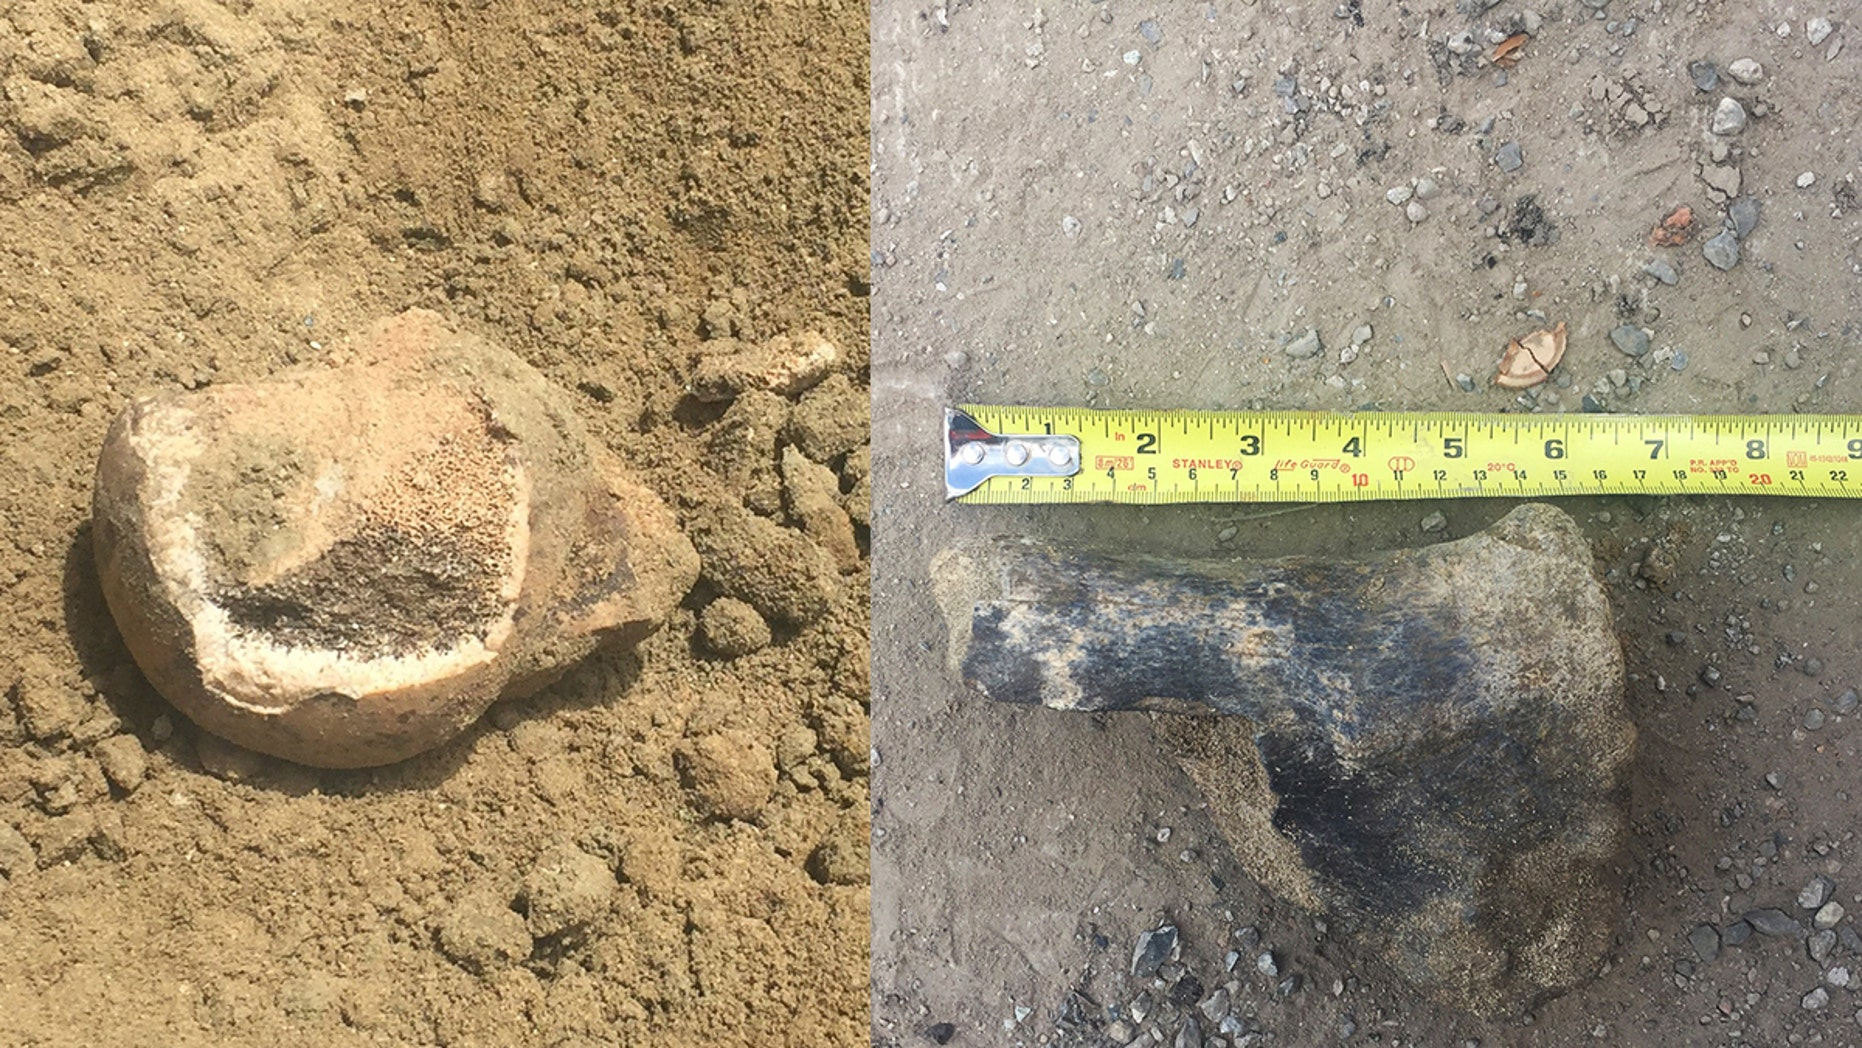 A transit project in L.A. recently unearthed fossils from long-extinct ice age animals — a femur head from a giant ground sloth (left) and part of a leg bone from a bison (right).